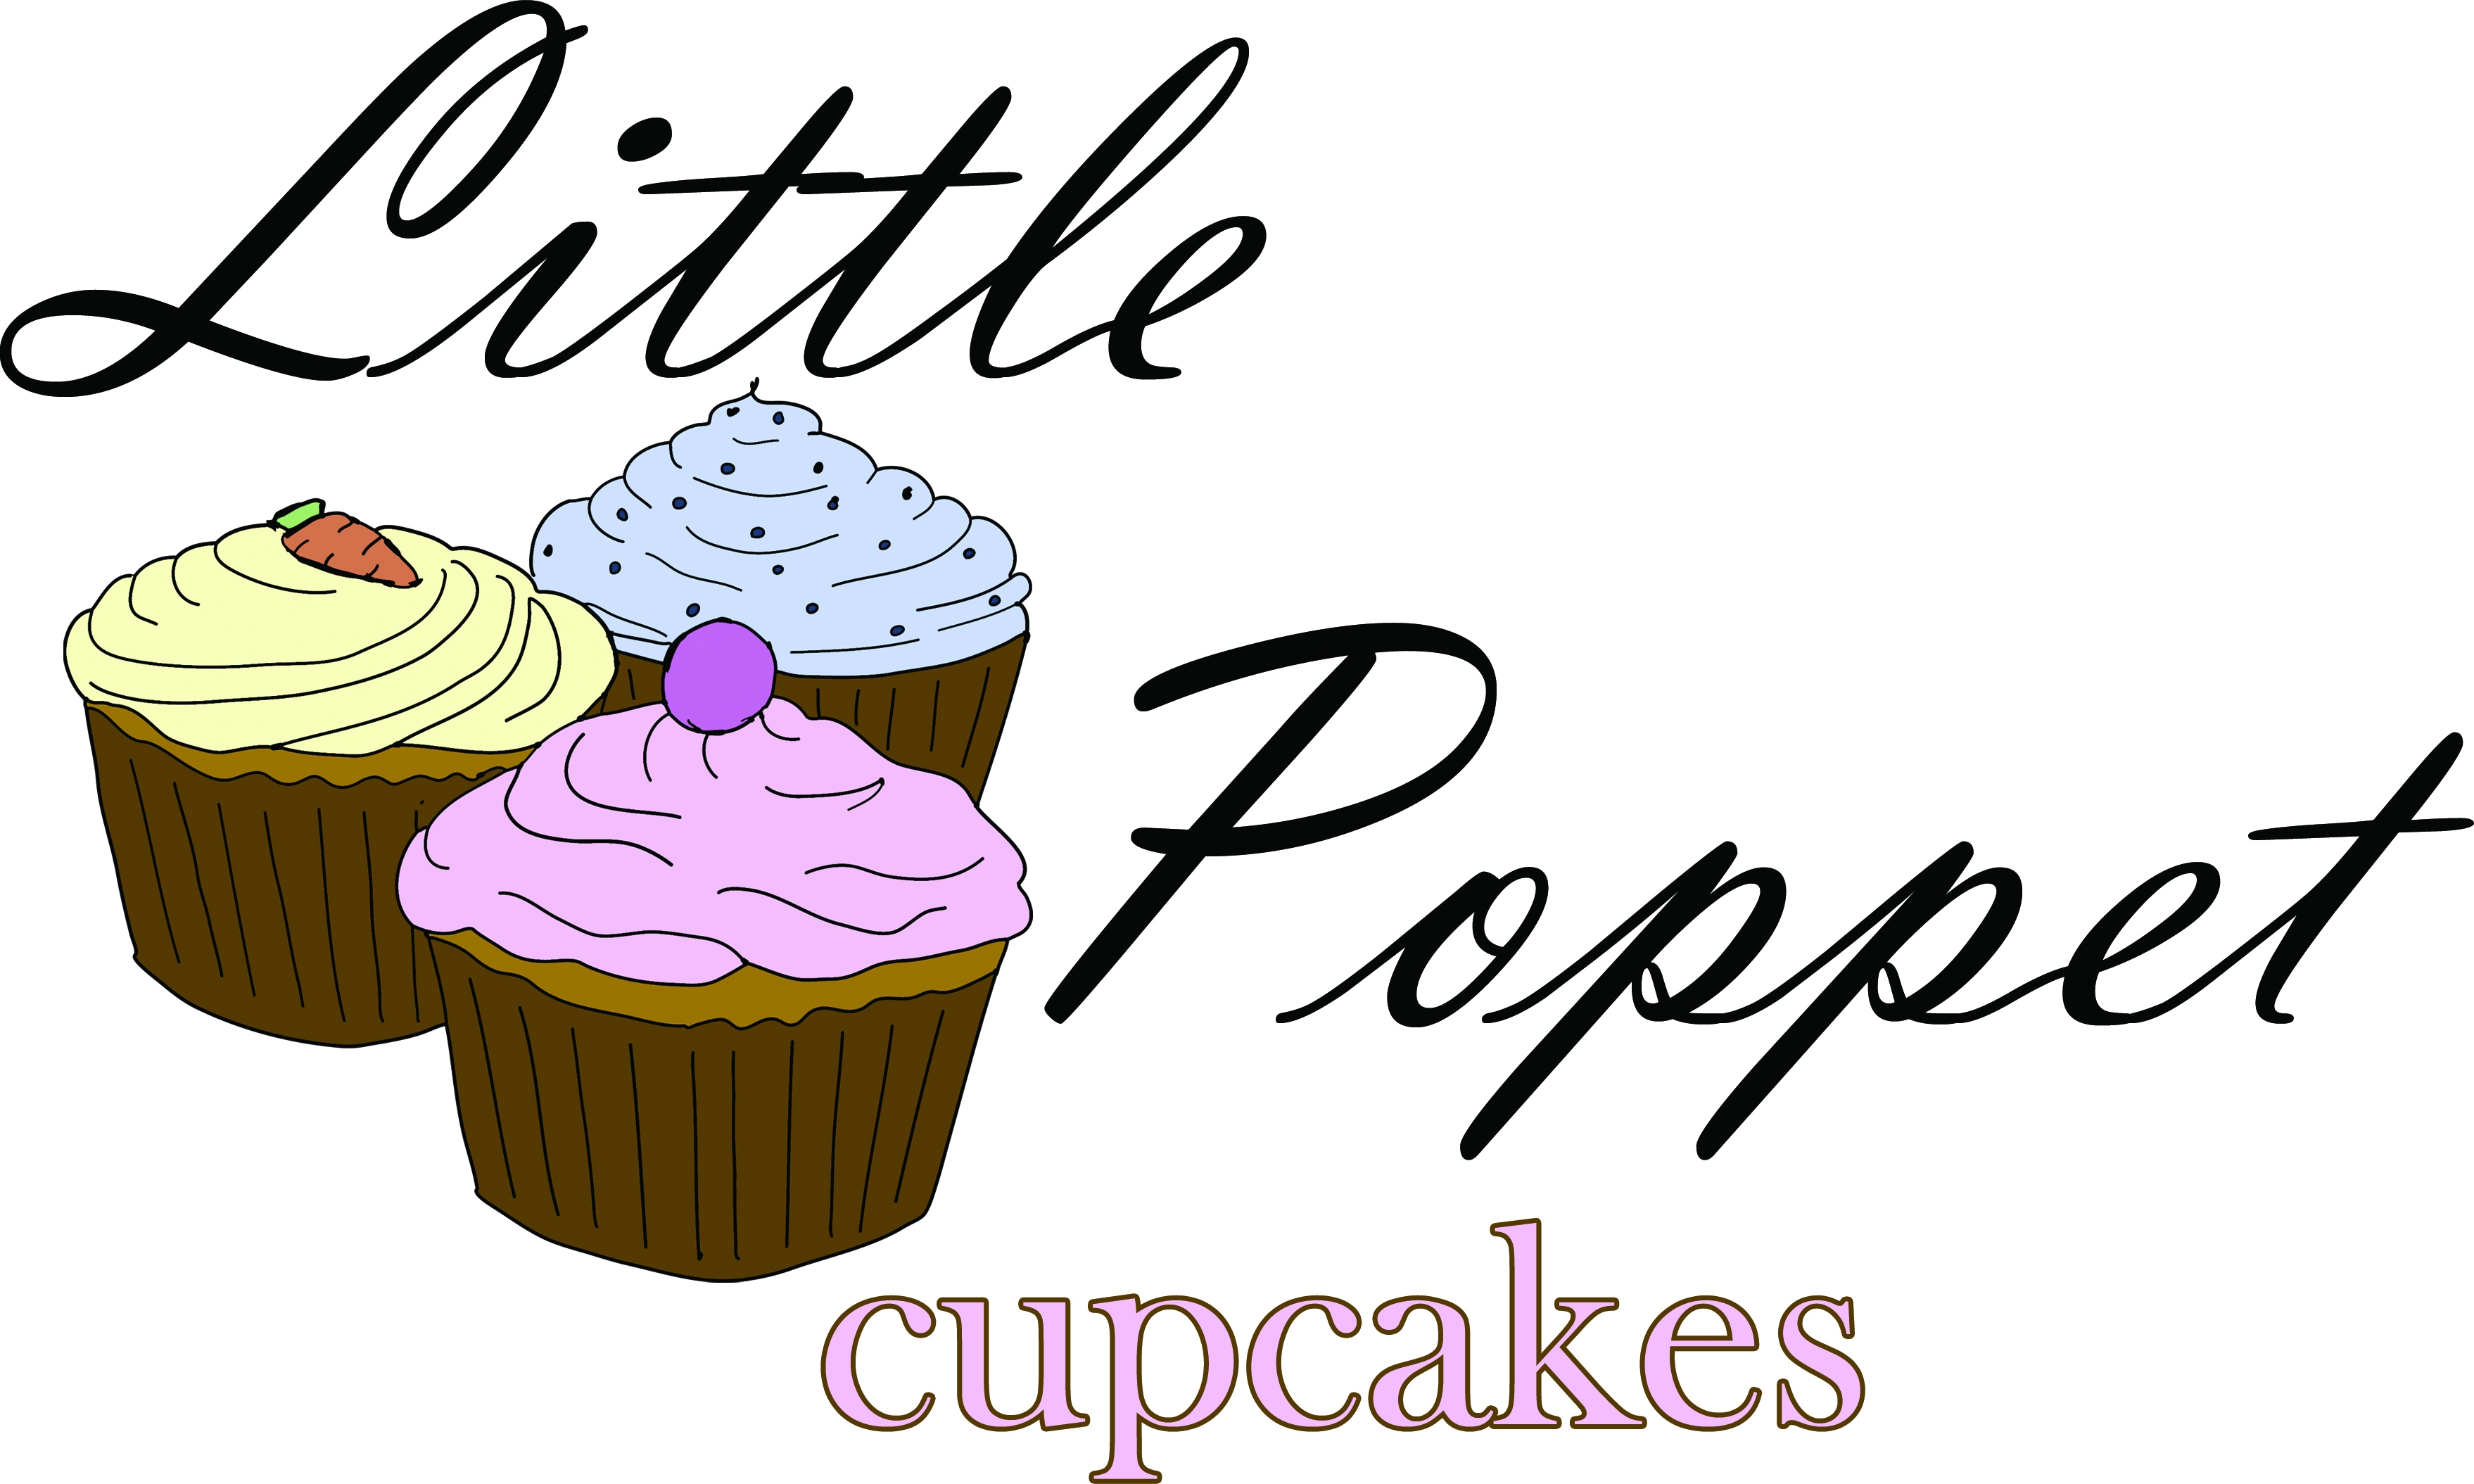 Little Poppet Cupcakes - Occasion Cakes, Cupcakes & Balloons